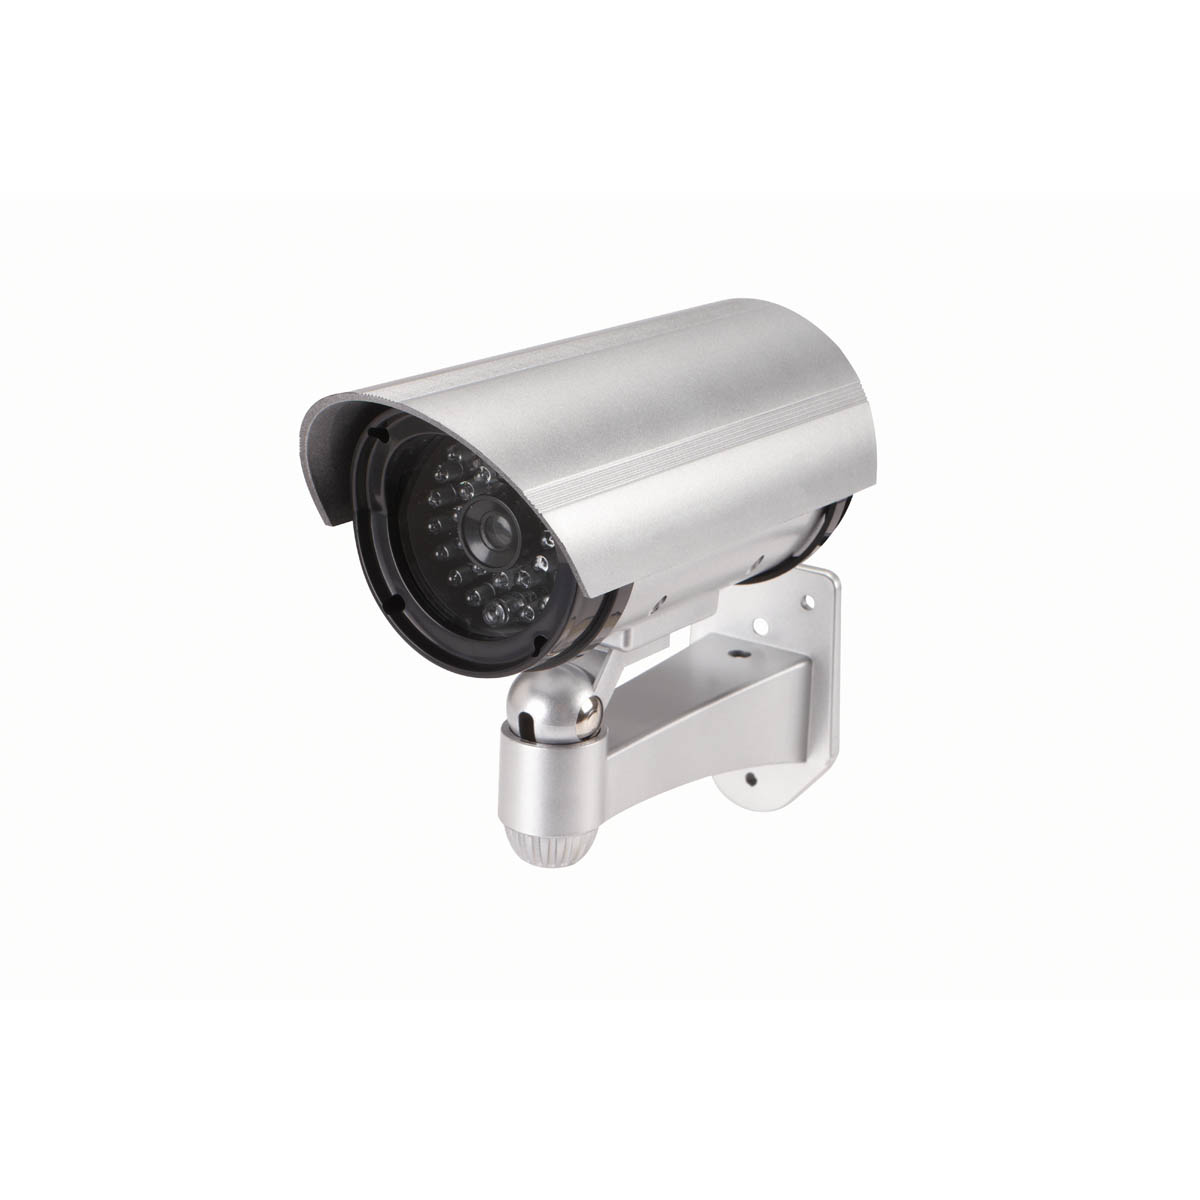 Outdoor imitation security camera mozeypictures Choice Image